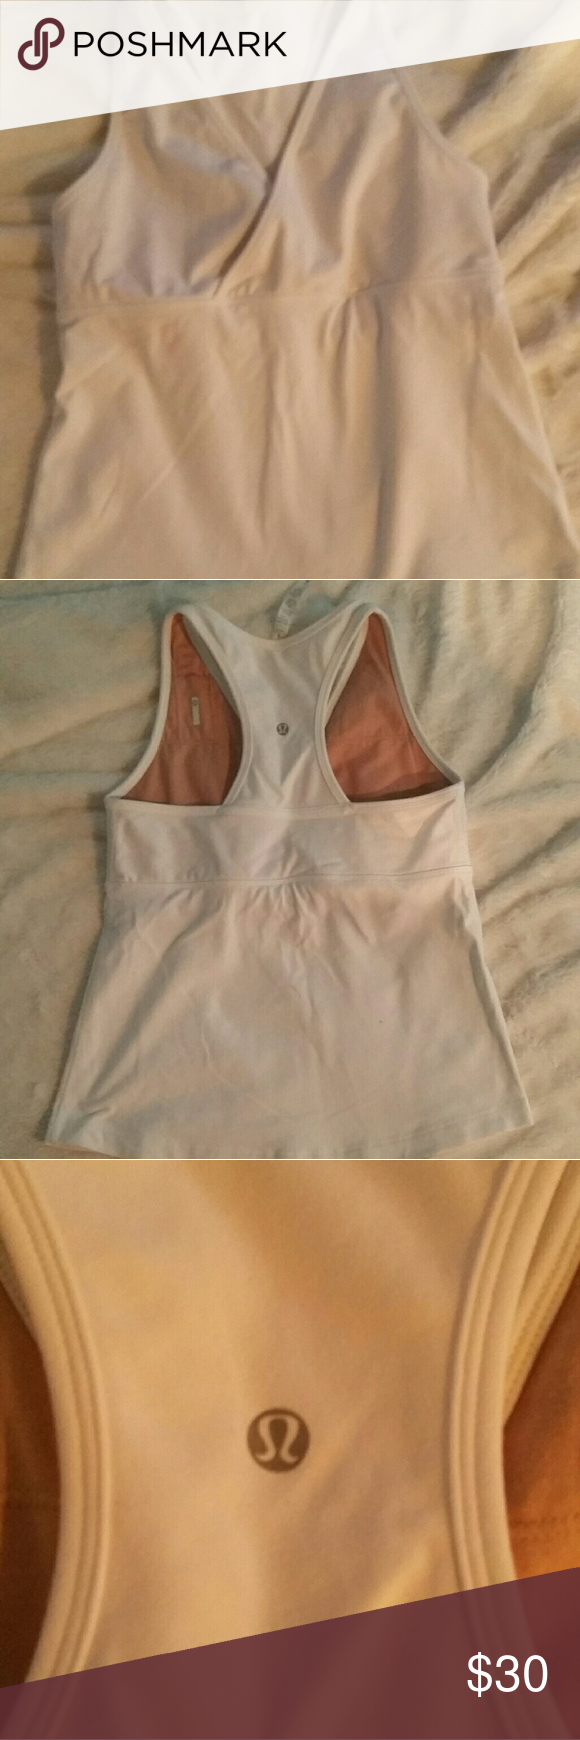 Lululemon Athletica Wet dry warm tank  Deep vee White  Size 10 Excellent condition  Never warn lululemon athletica Tops